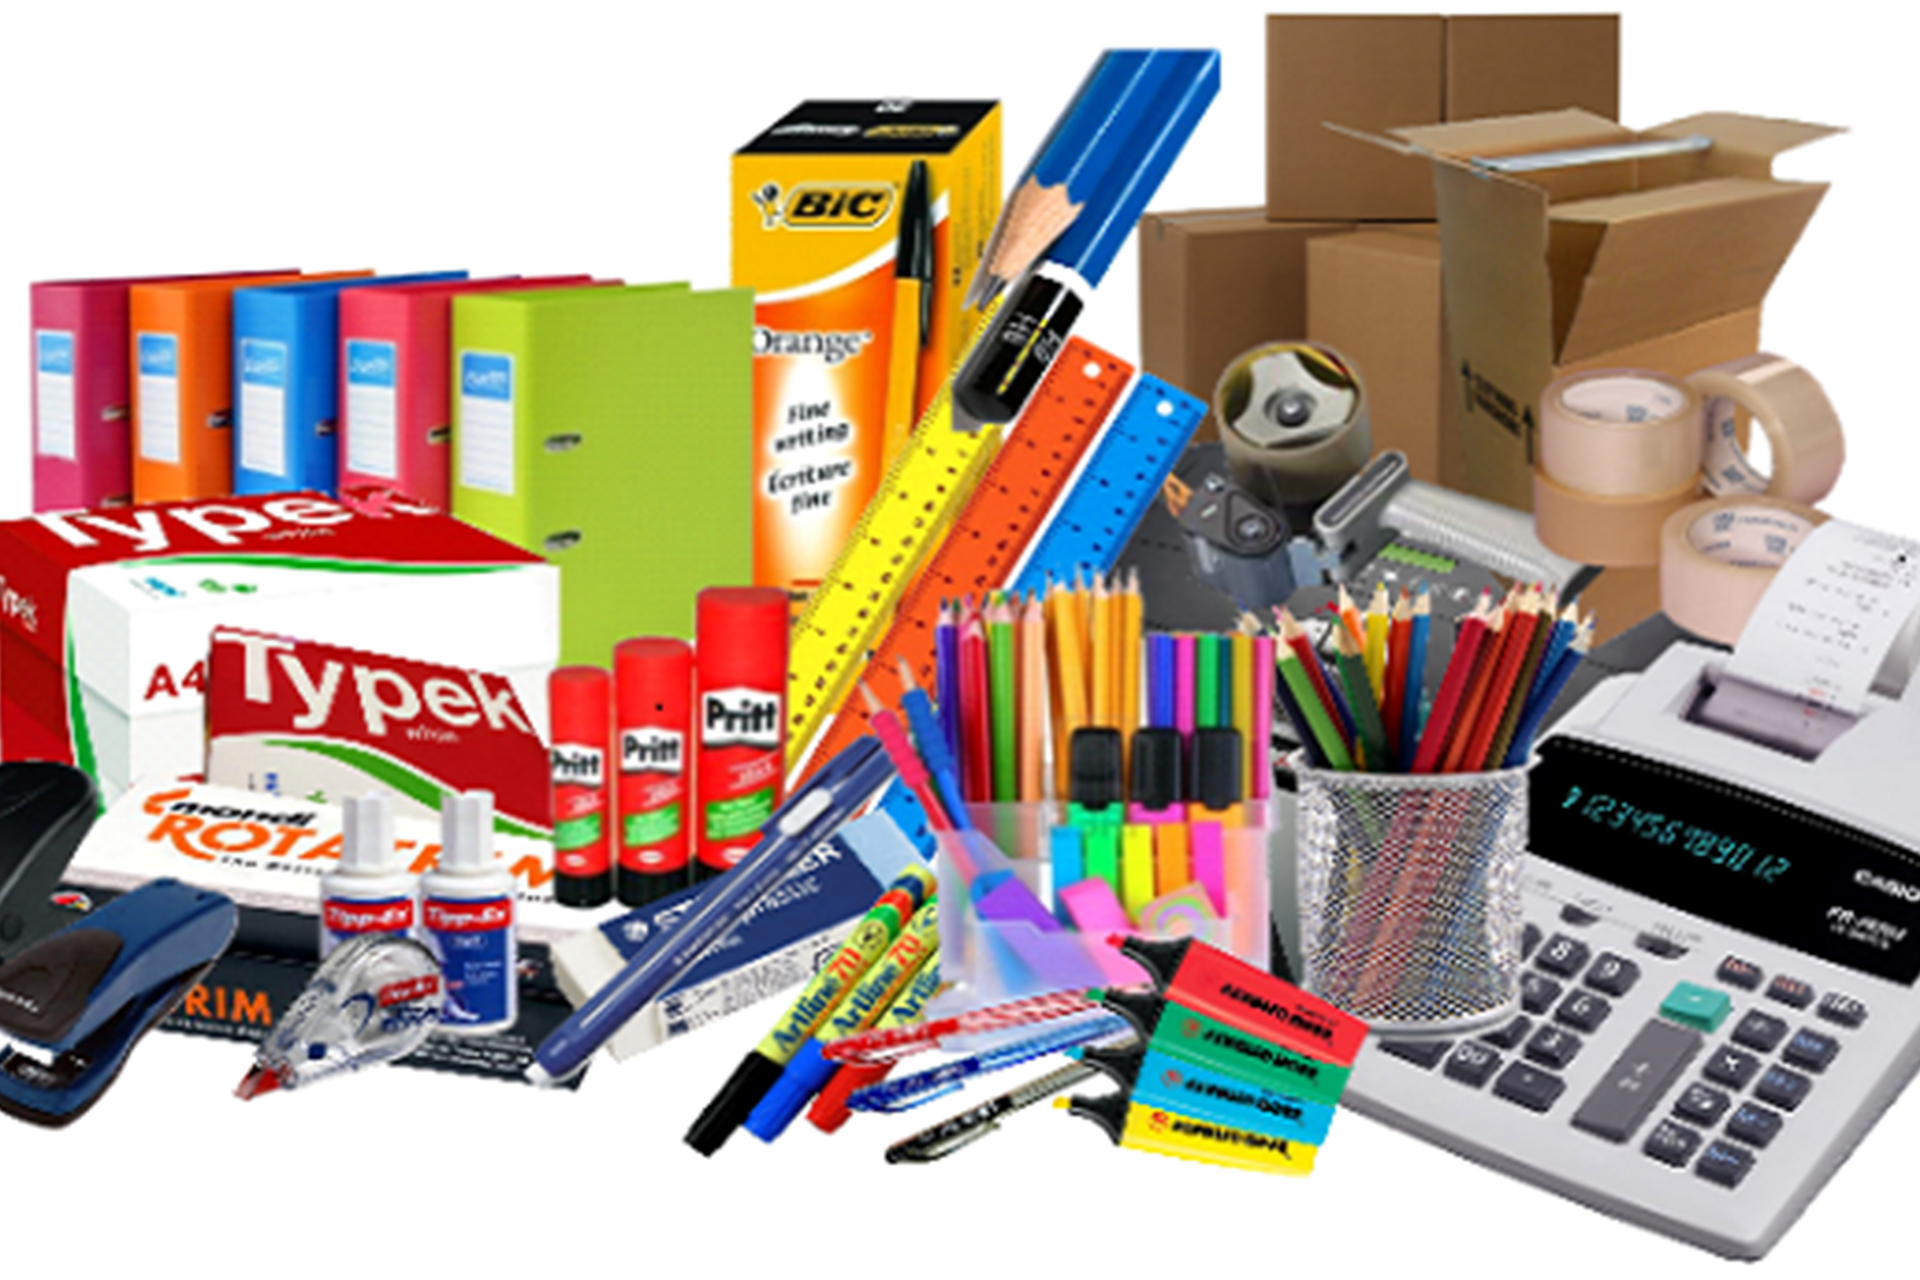 Stationery 82409 Png Images Pngio